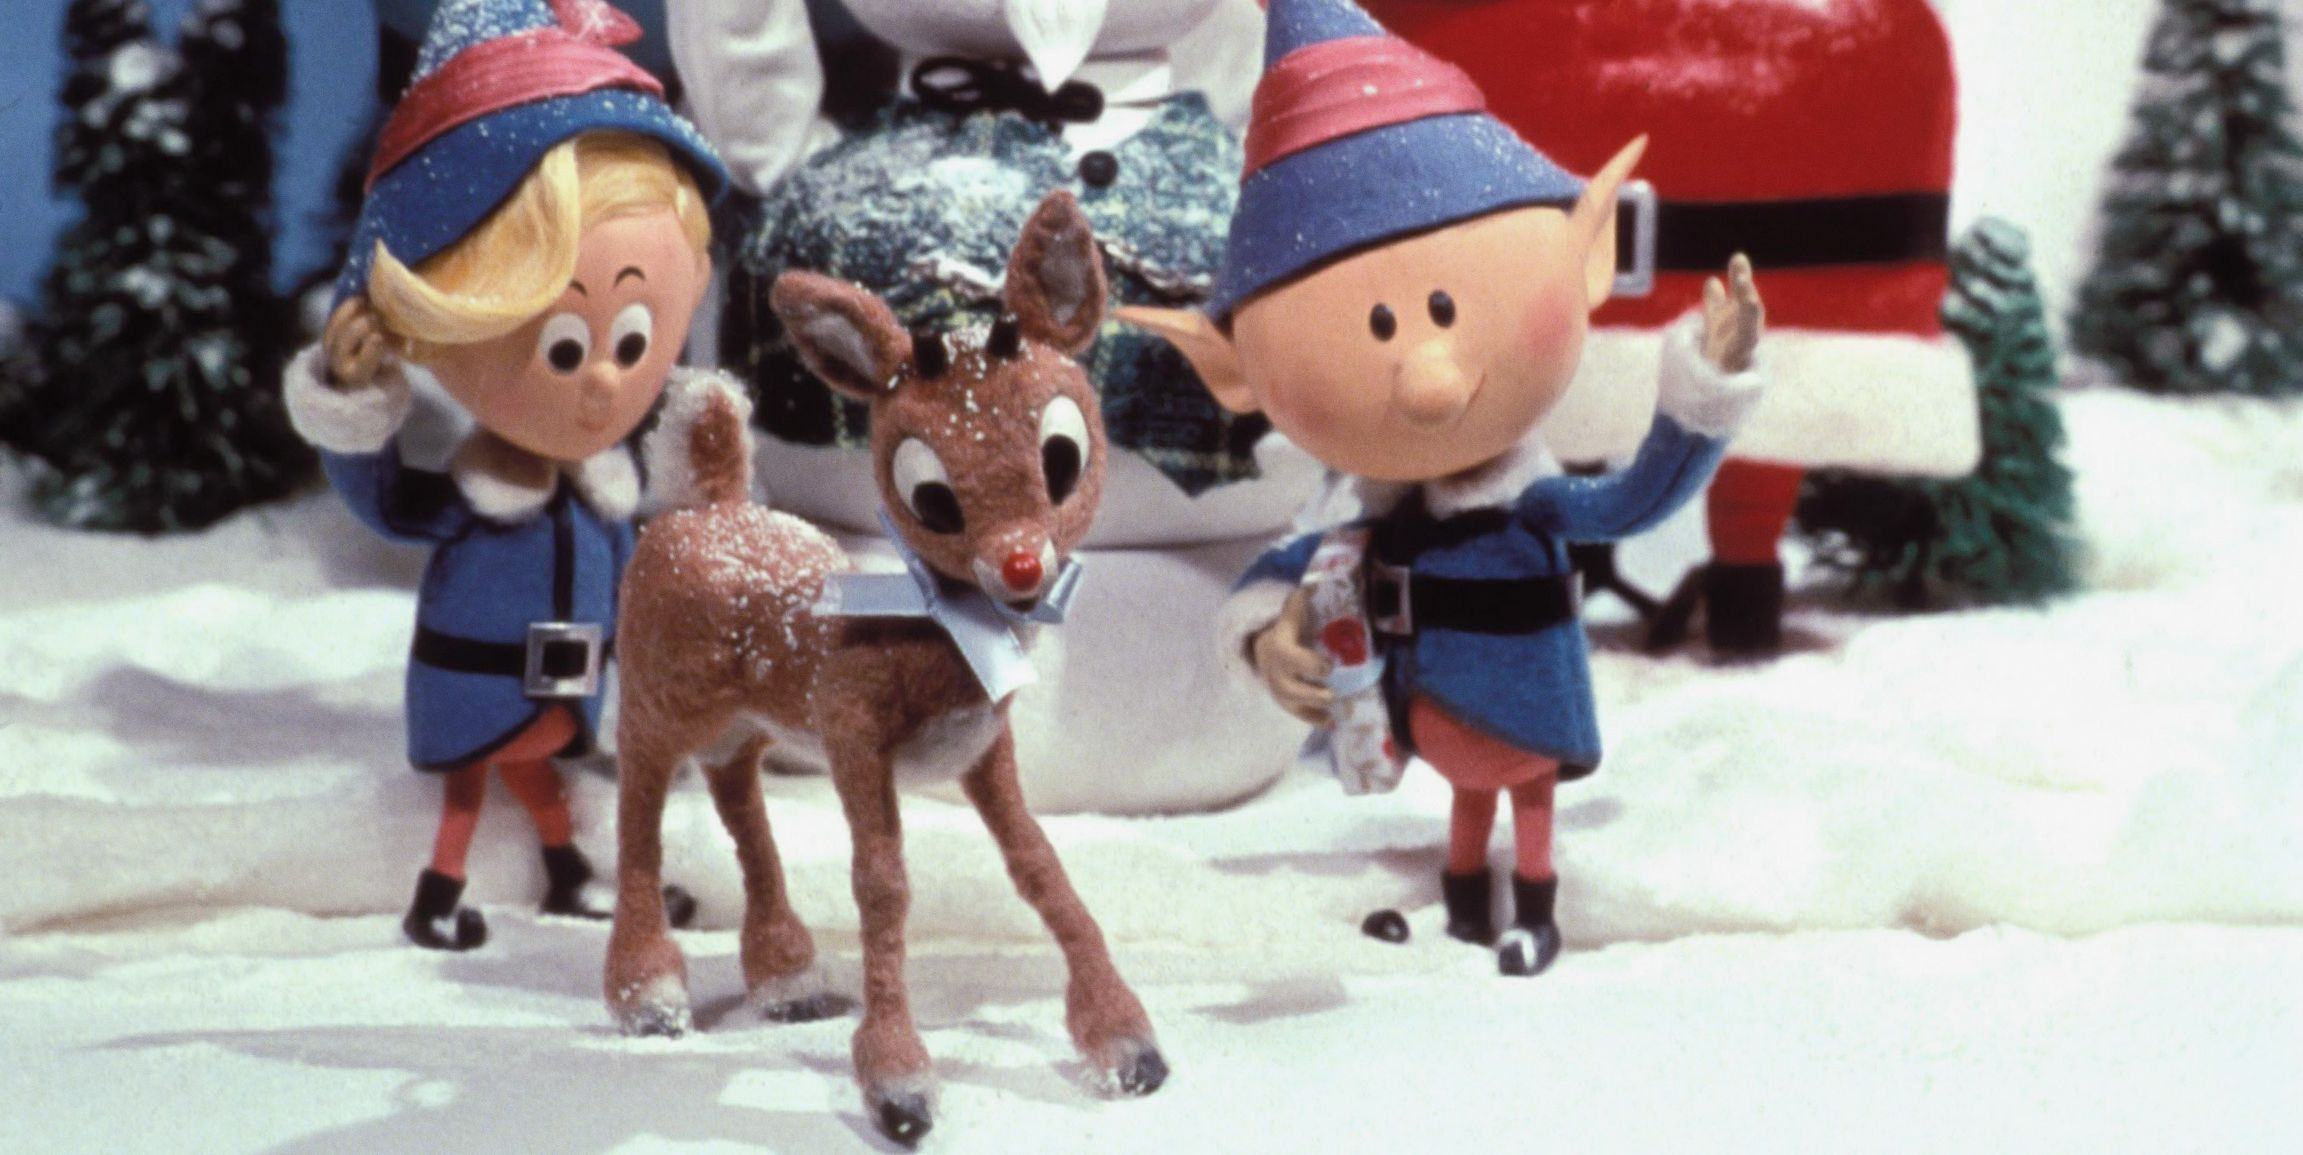 Everyone Is Asking the Same Question About 'Rudolph the Red-Nosed Reindeer'